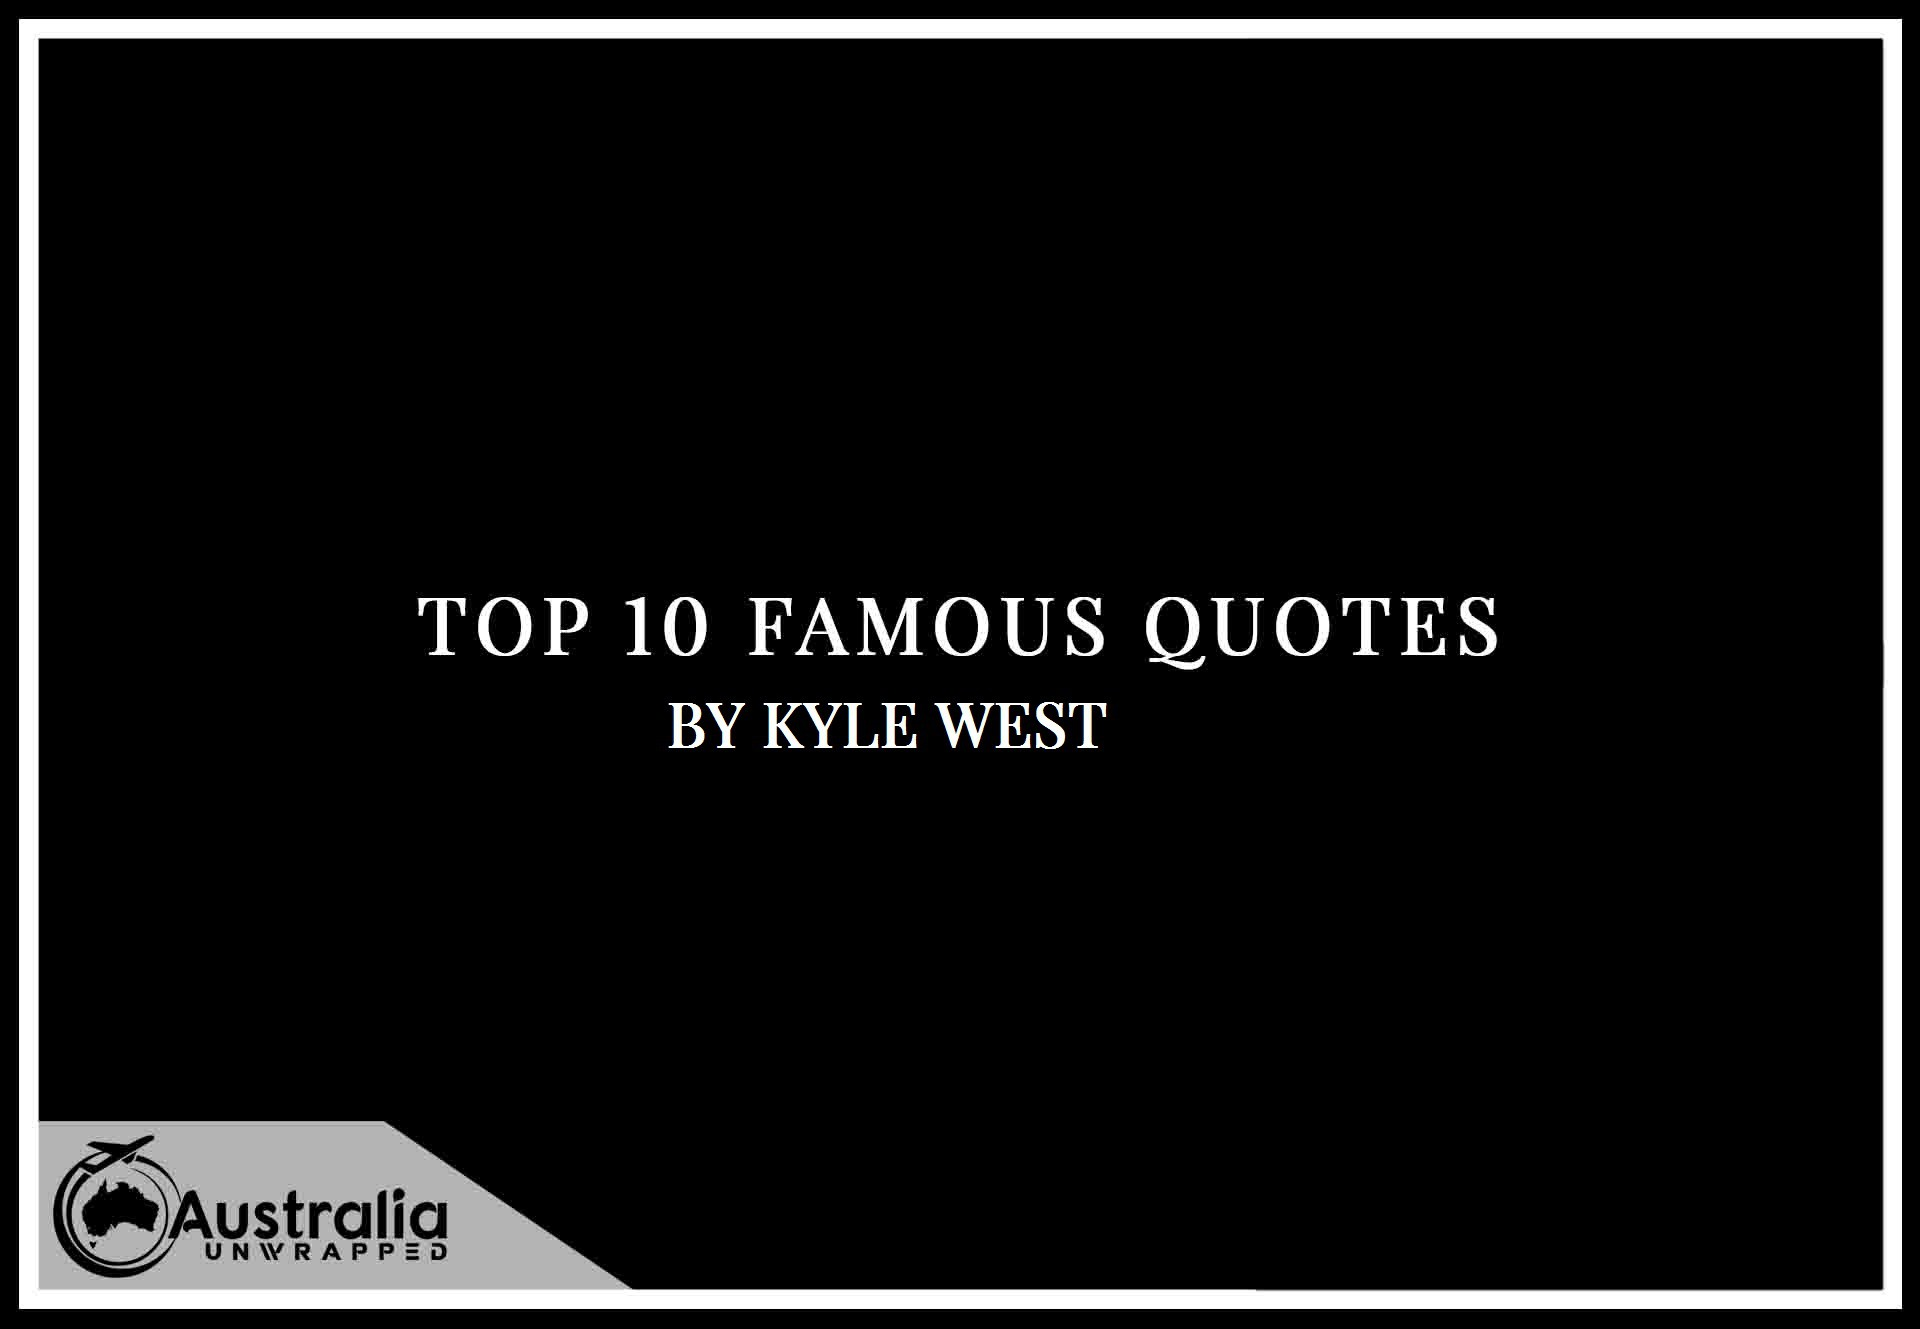 Kyle West's Top 10 Popular and Famous Quotes